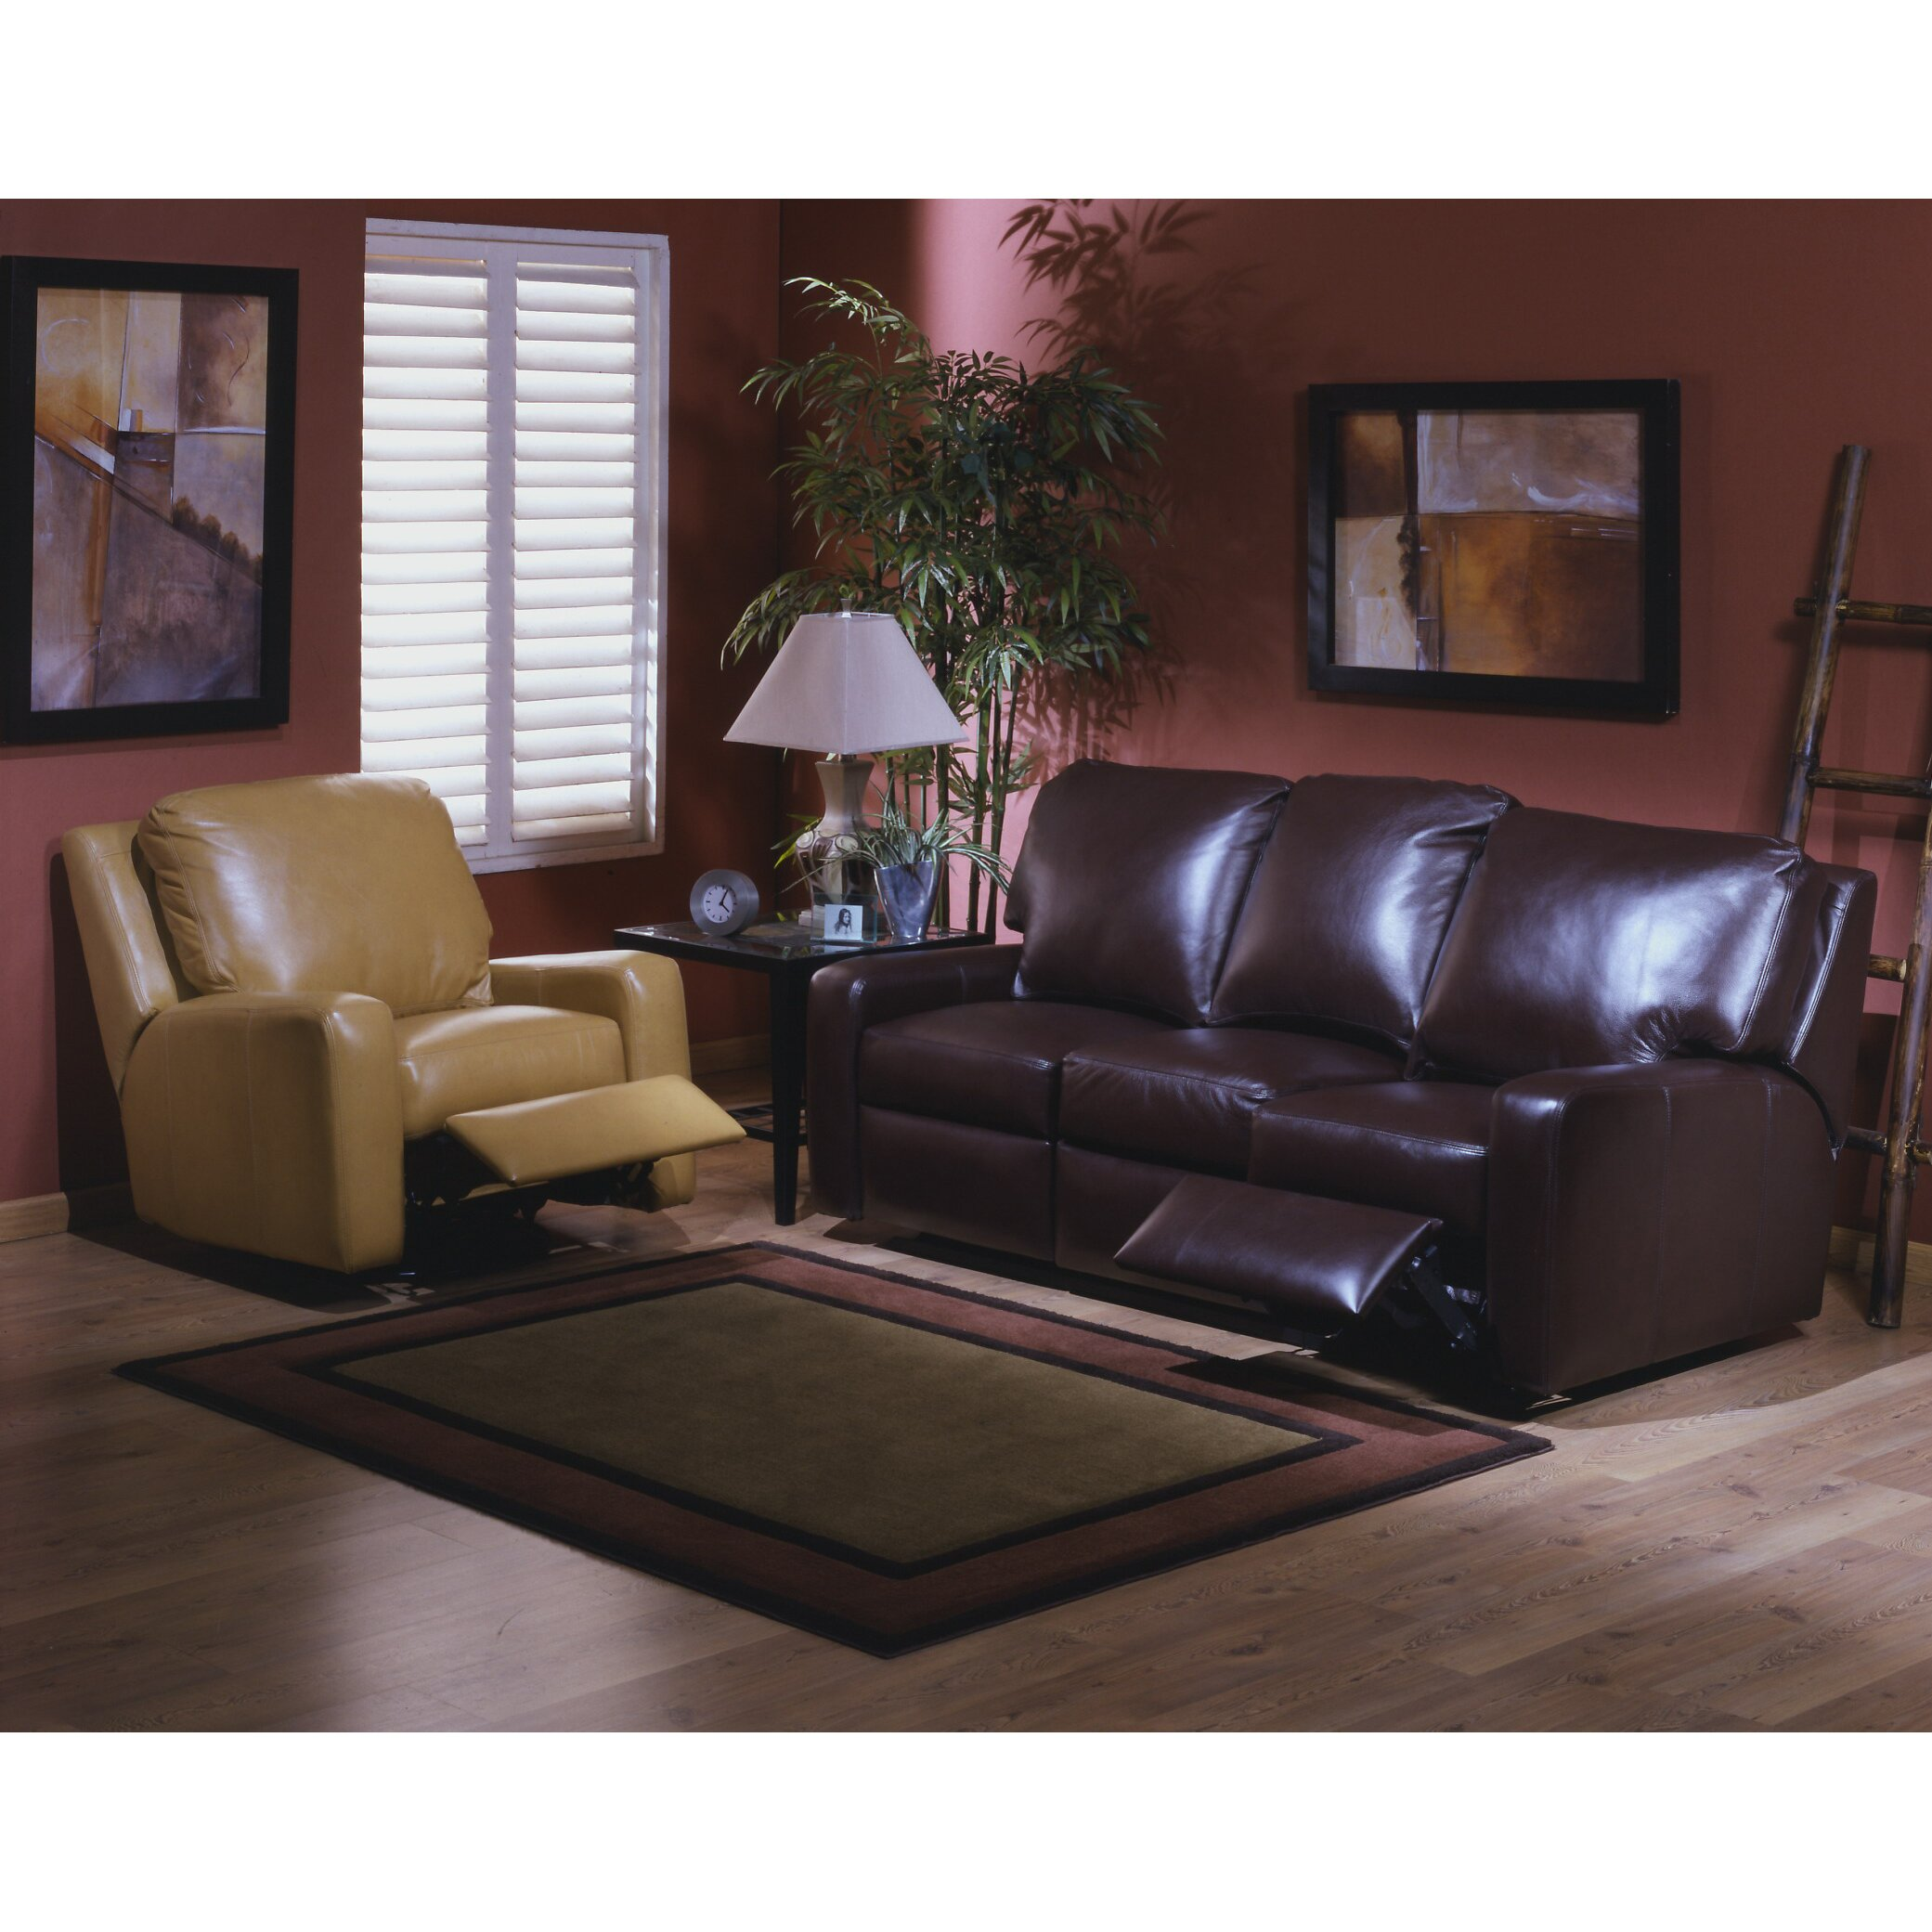 omnia leather mirage 4 seat sofa leather living room set reviews